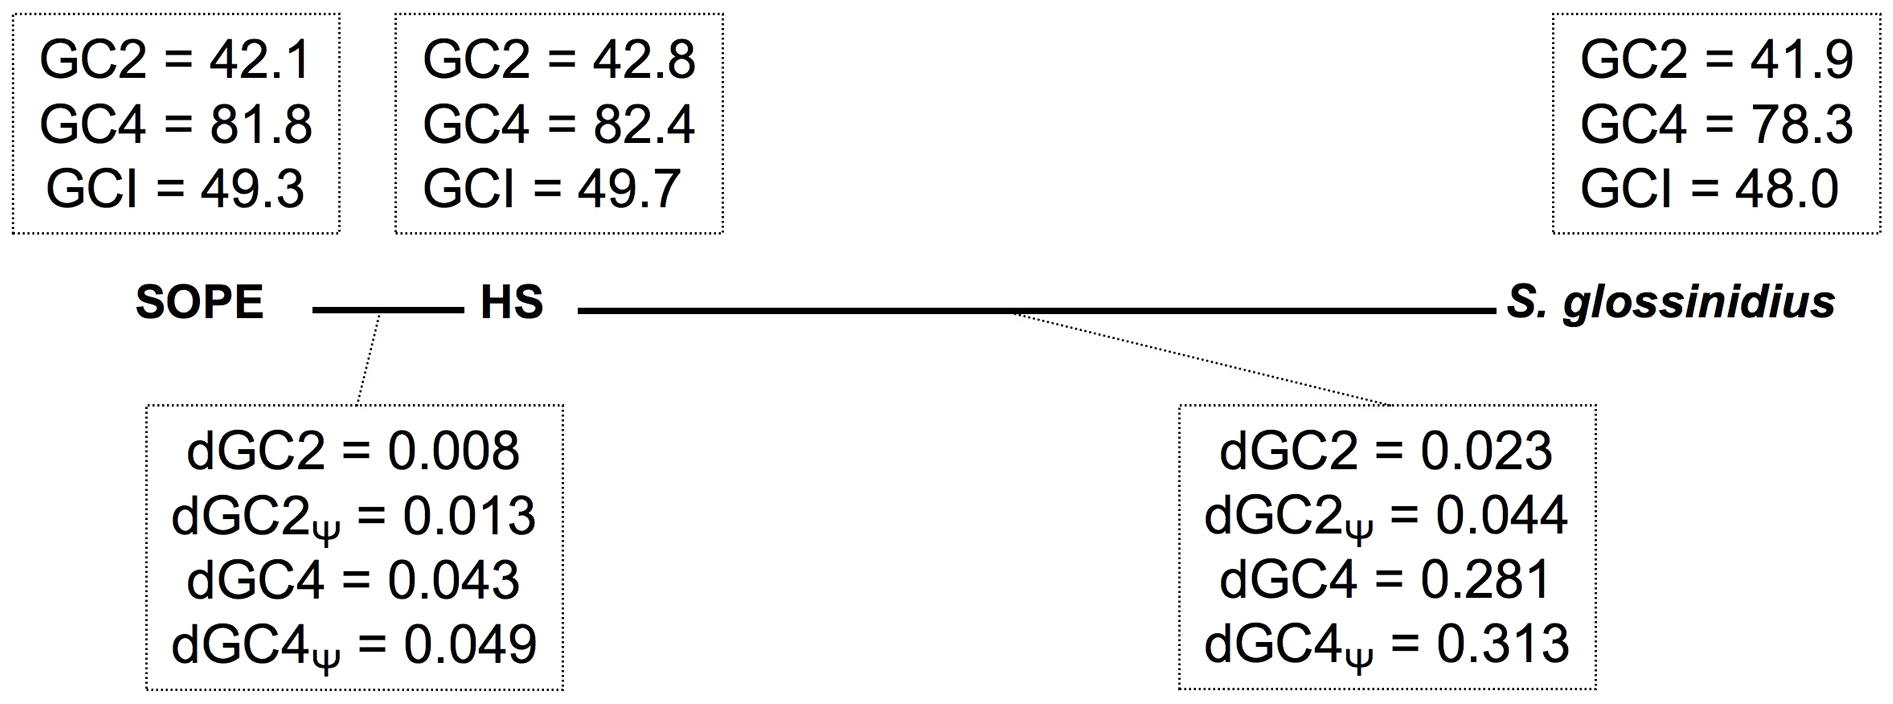 Base composition bias and mutation rates observed in pairwise comparisons between strain HS, <i>S. glossinidius</i> and SOPE.